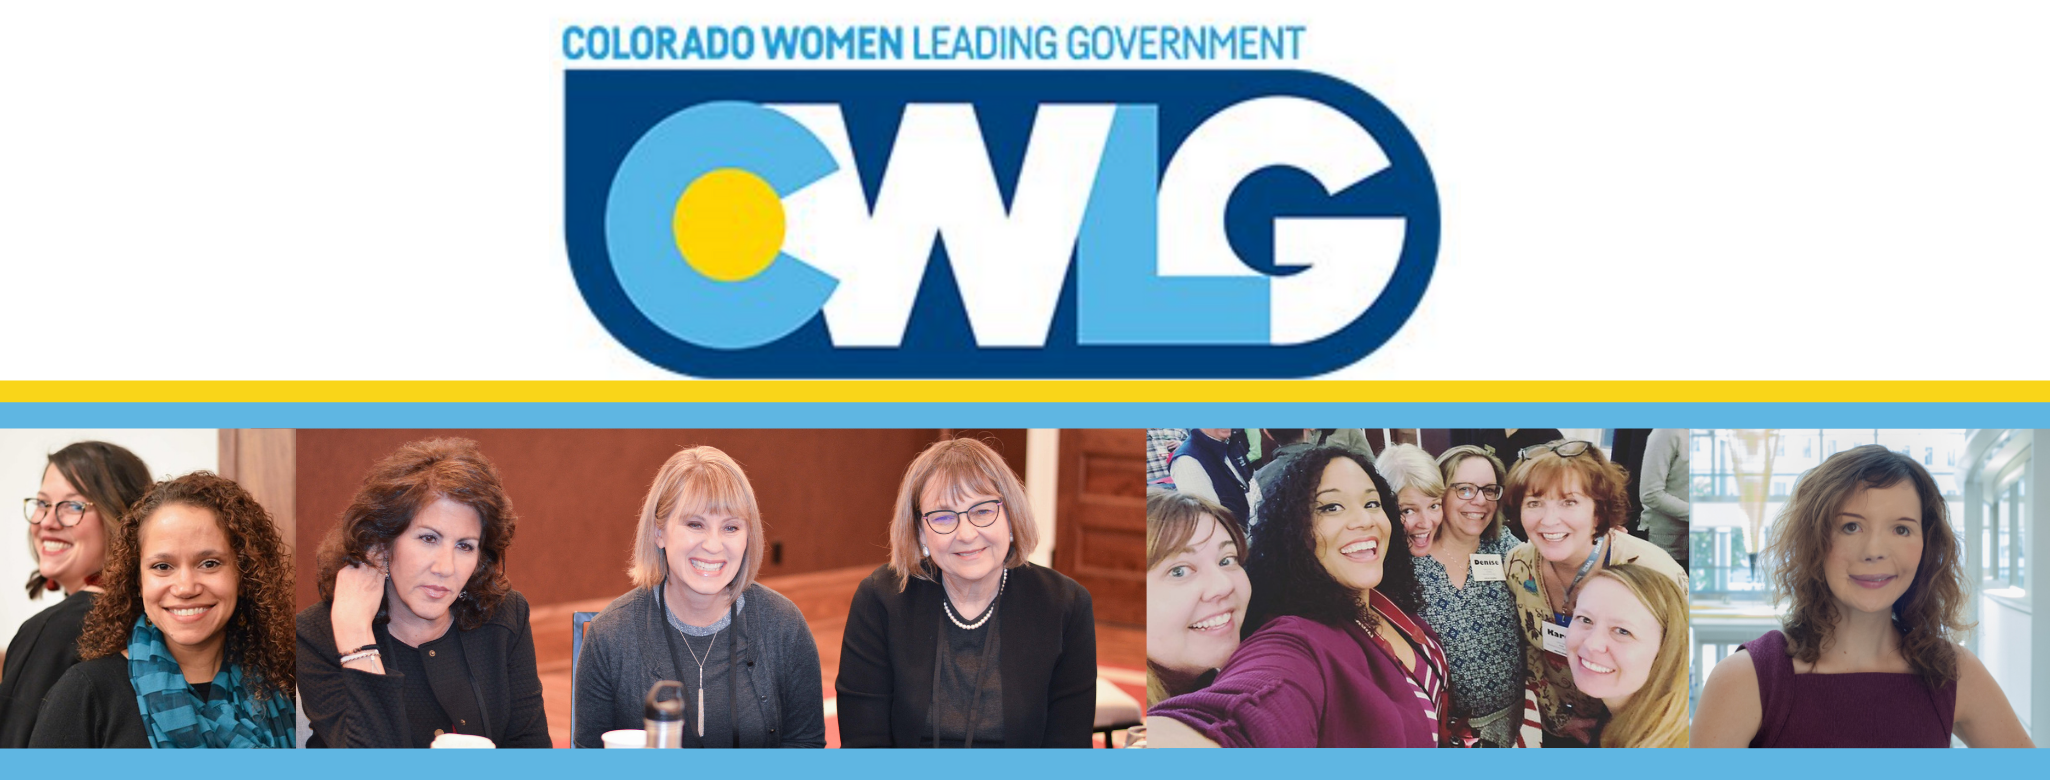 Colorado Women Leading Government 49